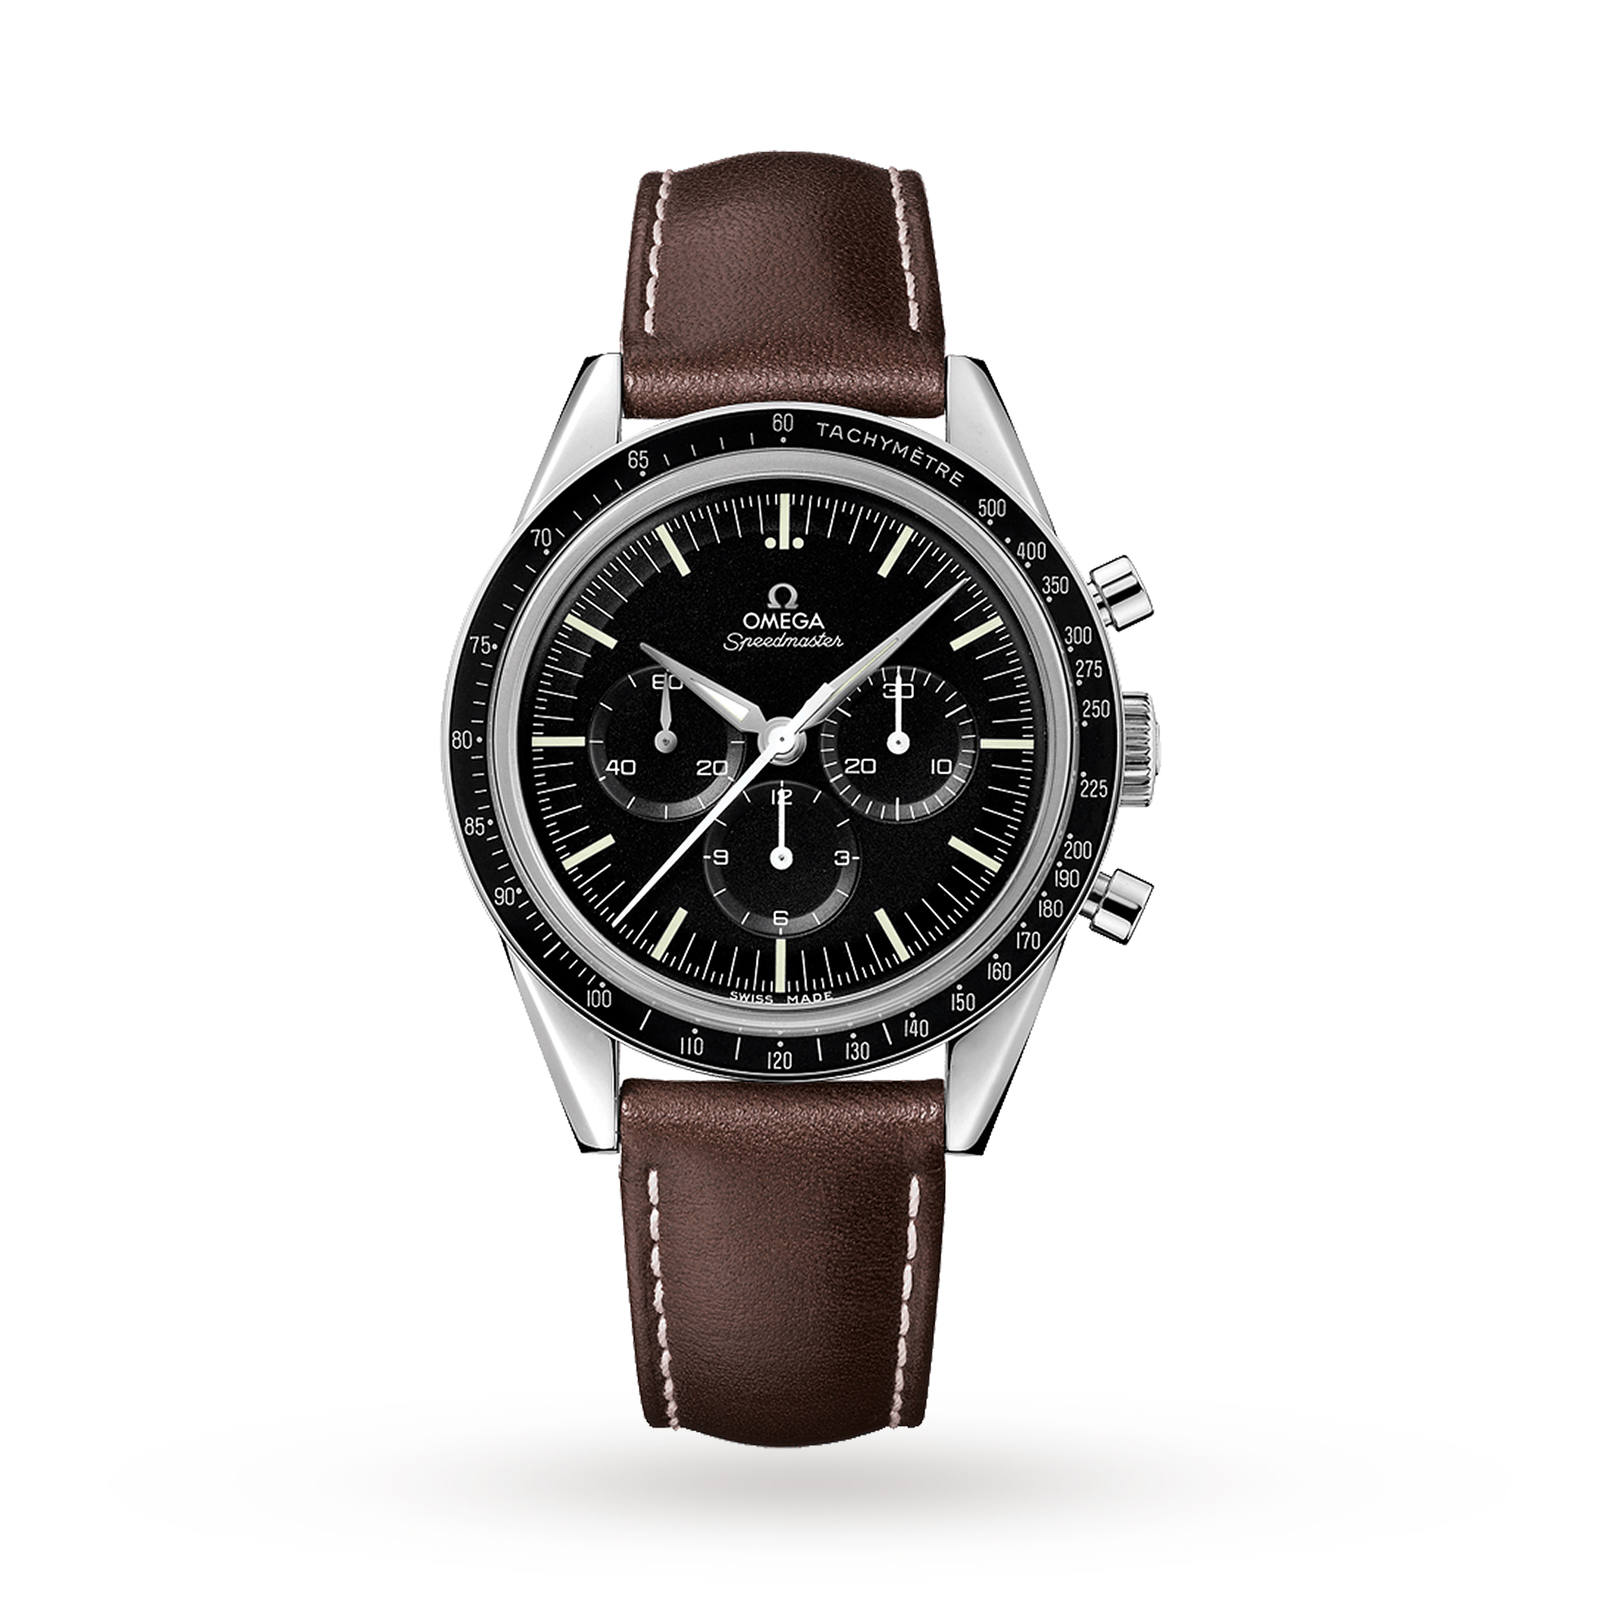 Omega Speedmaster Moonwatch First Omega In Space Men's Watch